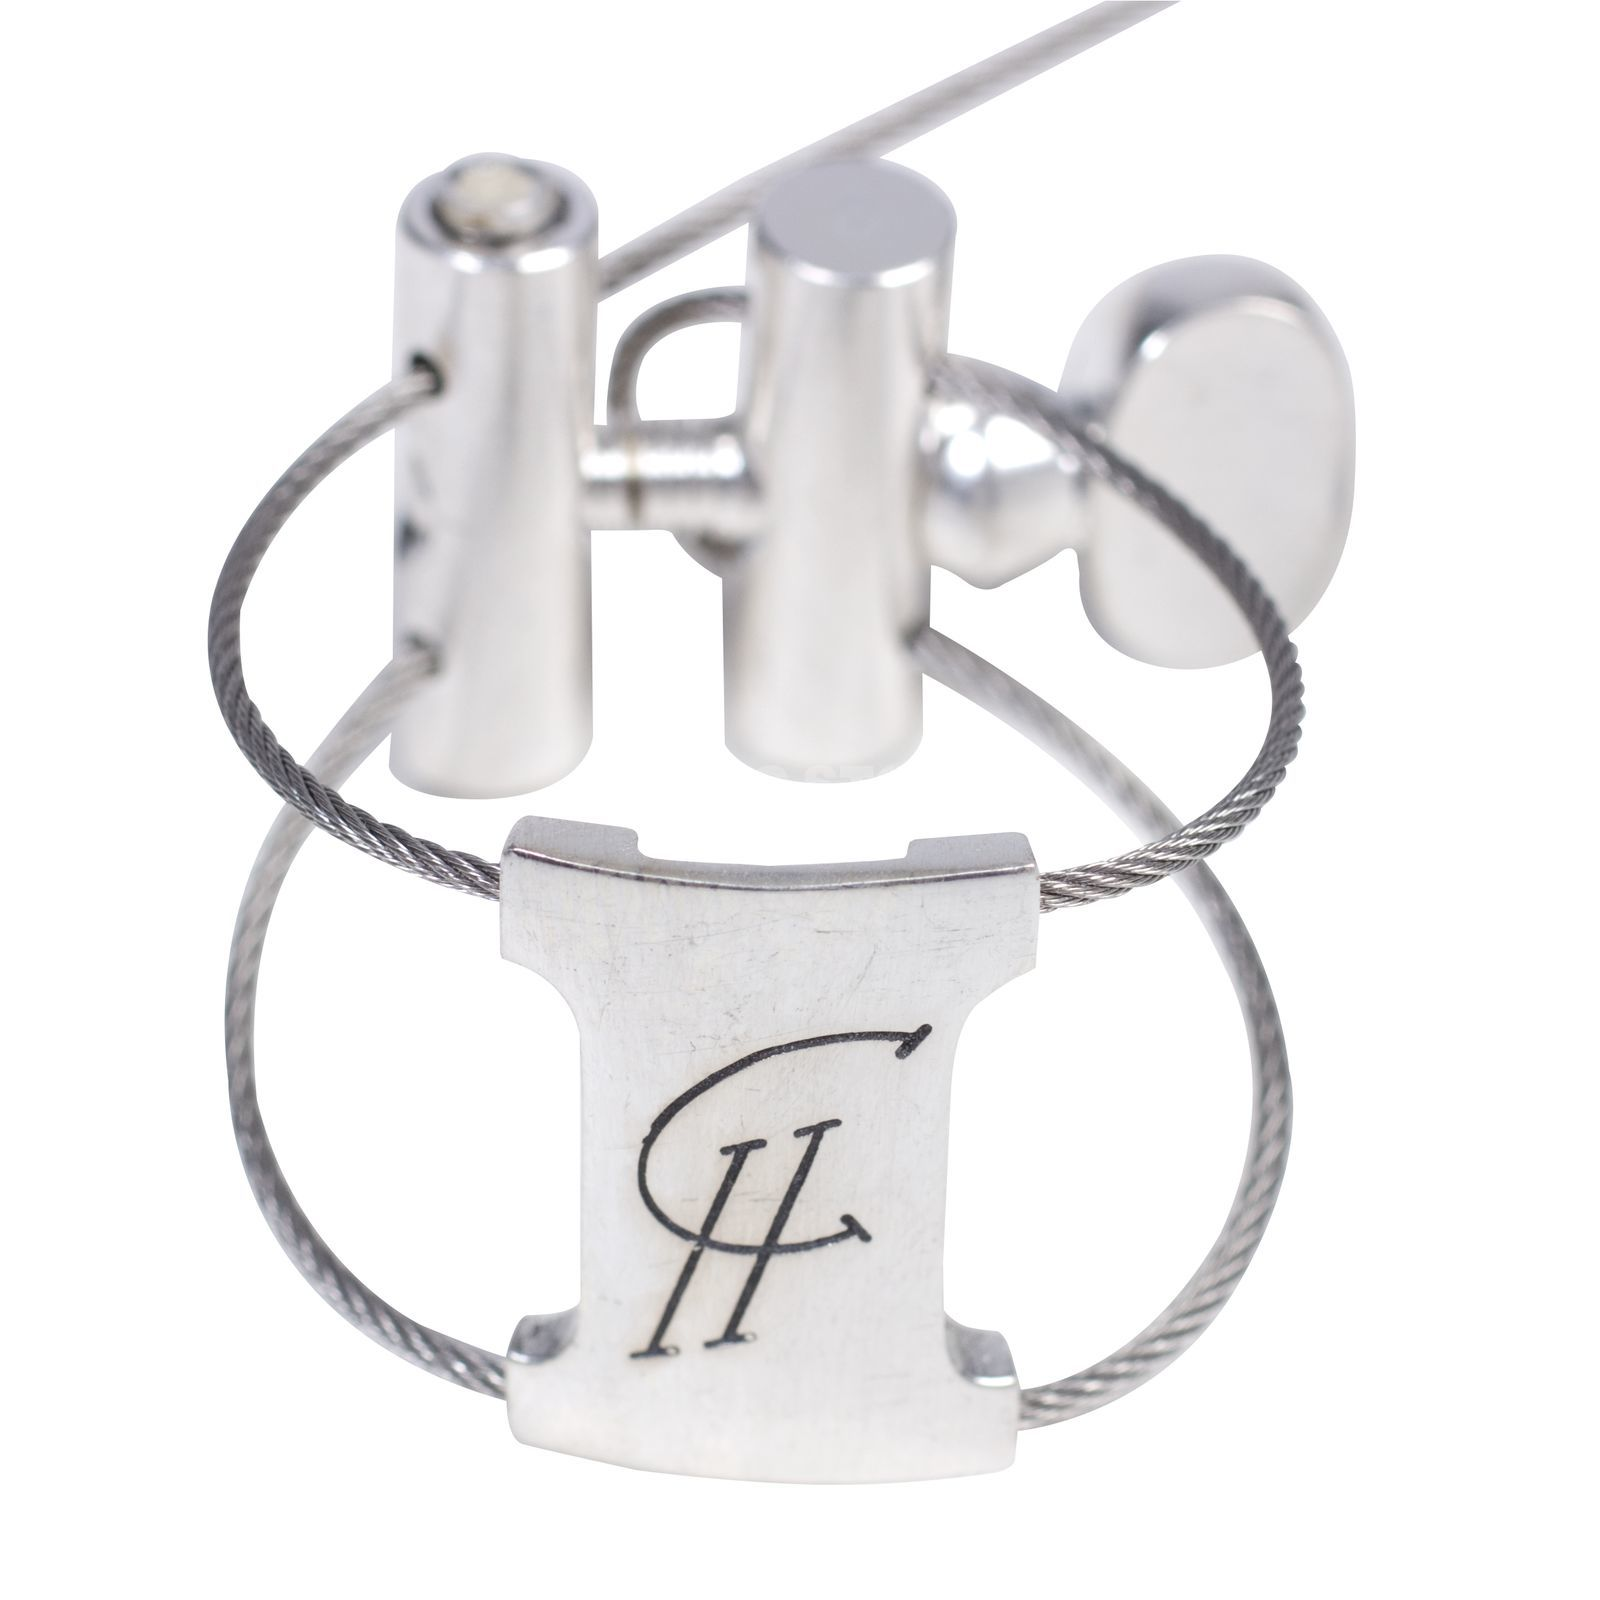 CH Sound Design Ligature Silver Product Image